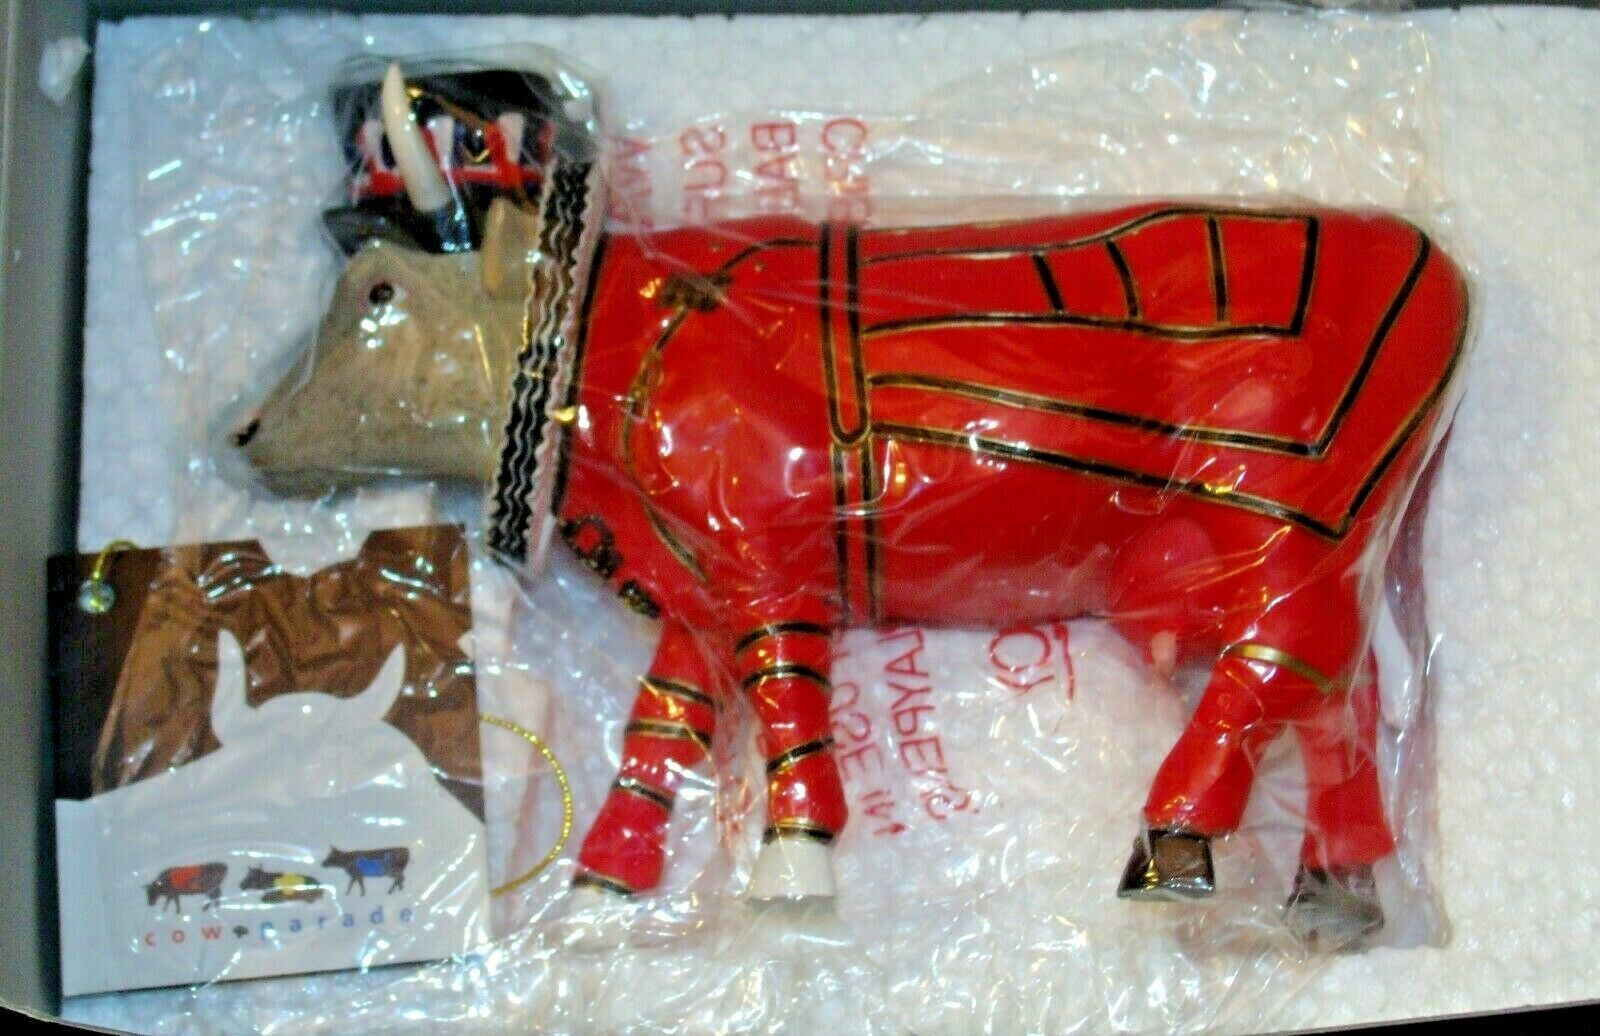 CowParade Beefeater It Ain't Natural #7427 Westland Giftware (Resin) AA-191935